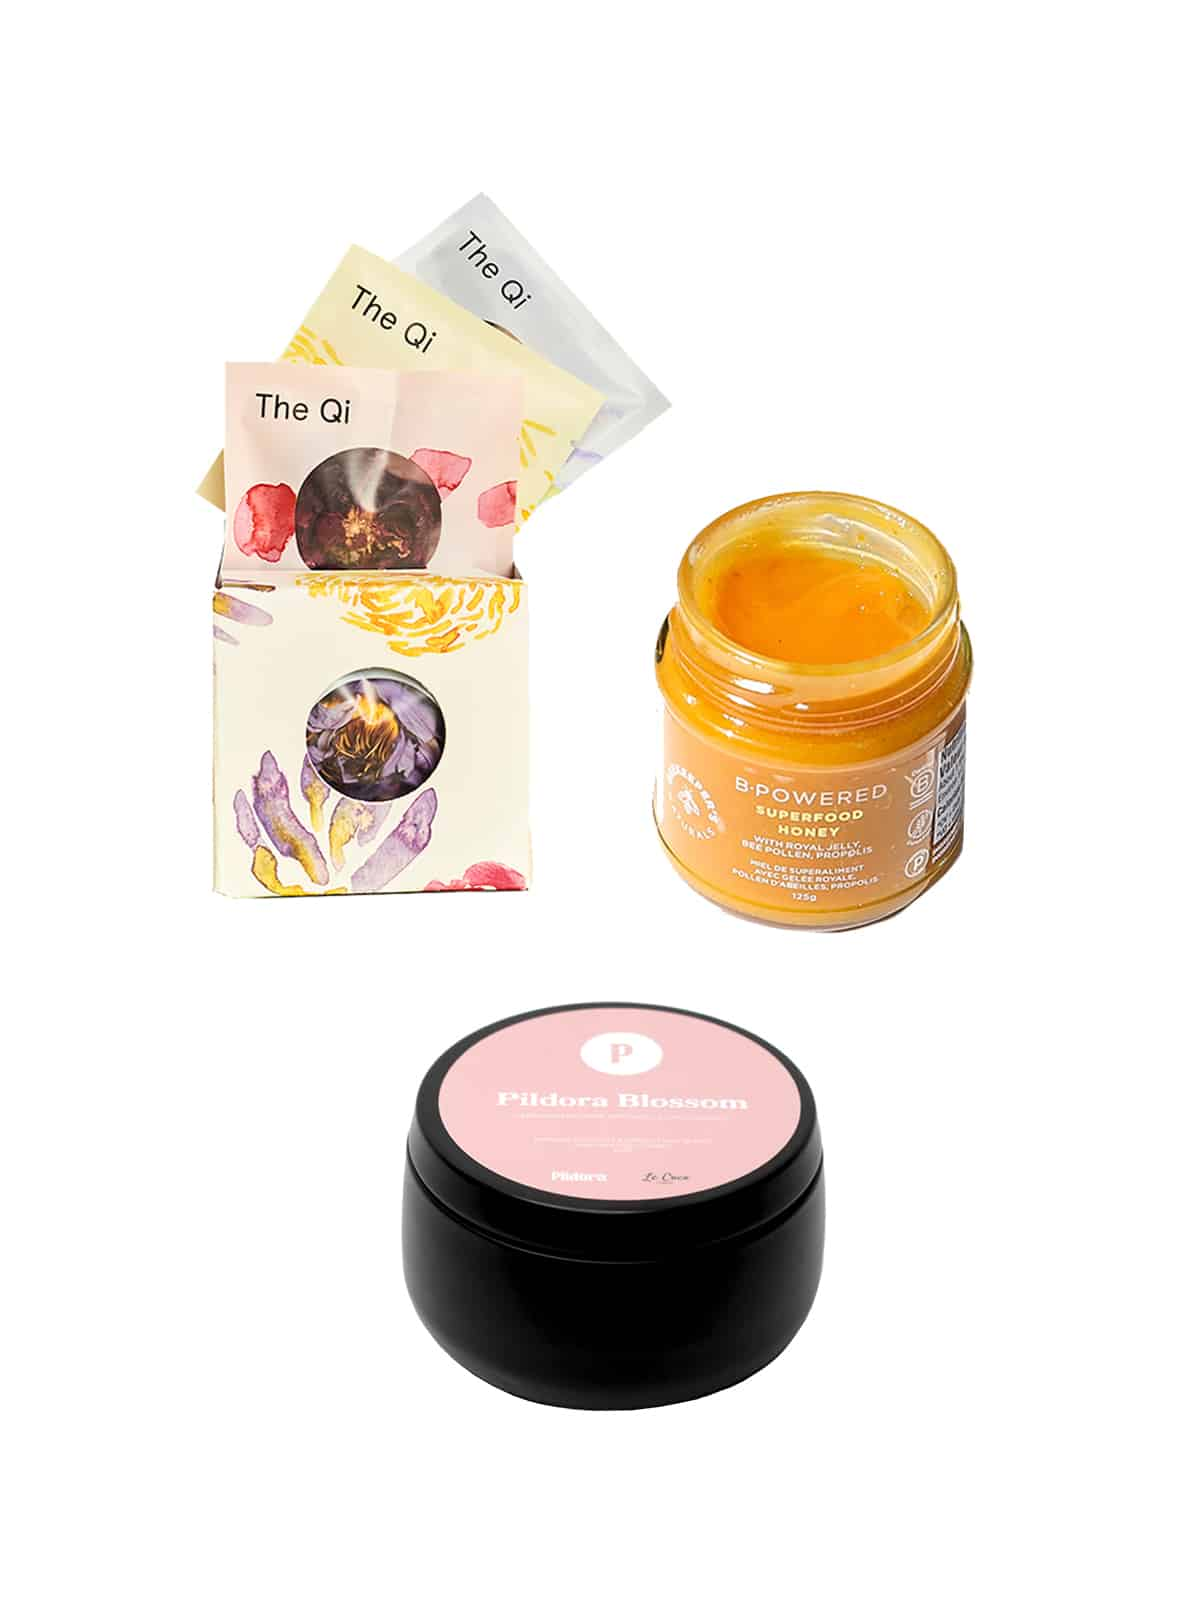 Afternoon Relax Routine Clean Kit with Pildora Blossom Candle, honey, and tea tasting collection